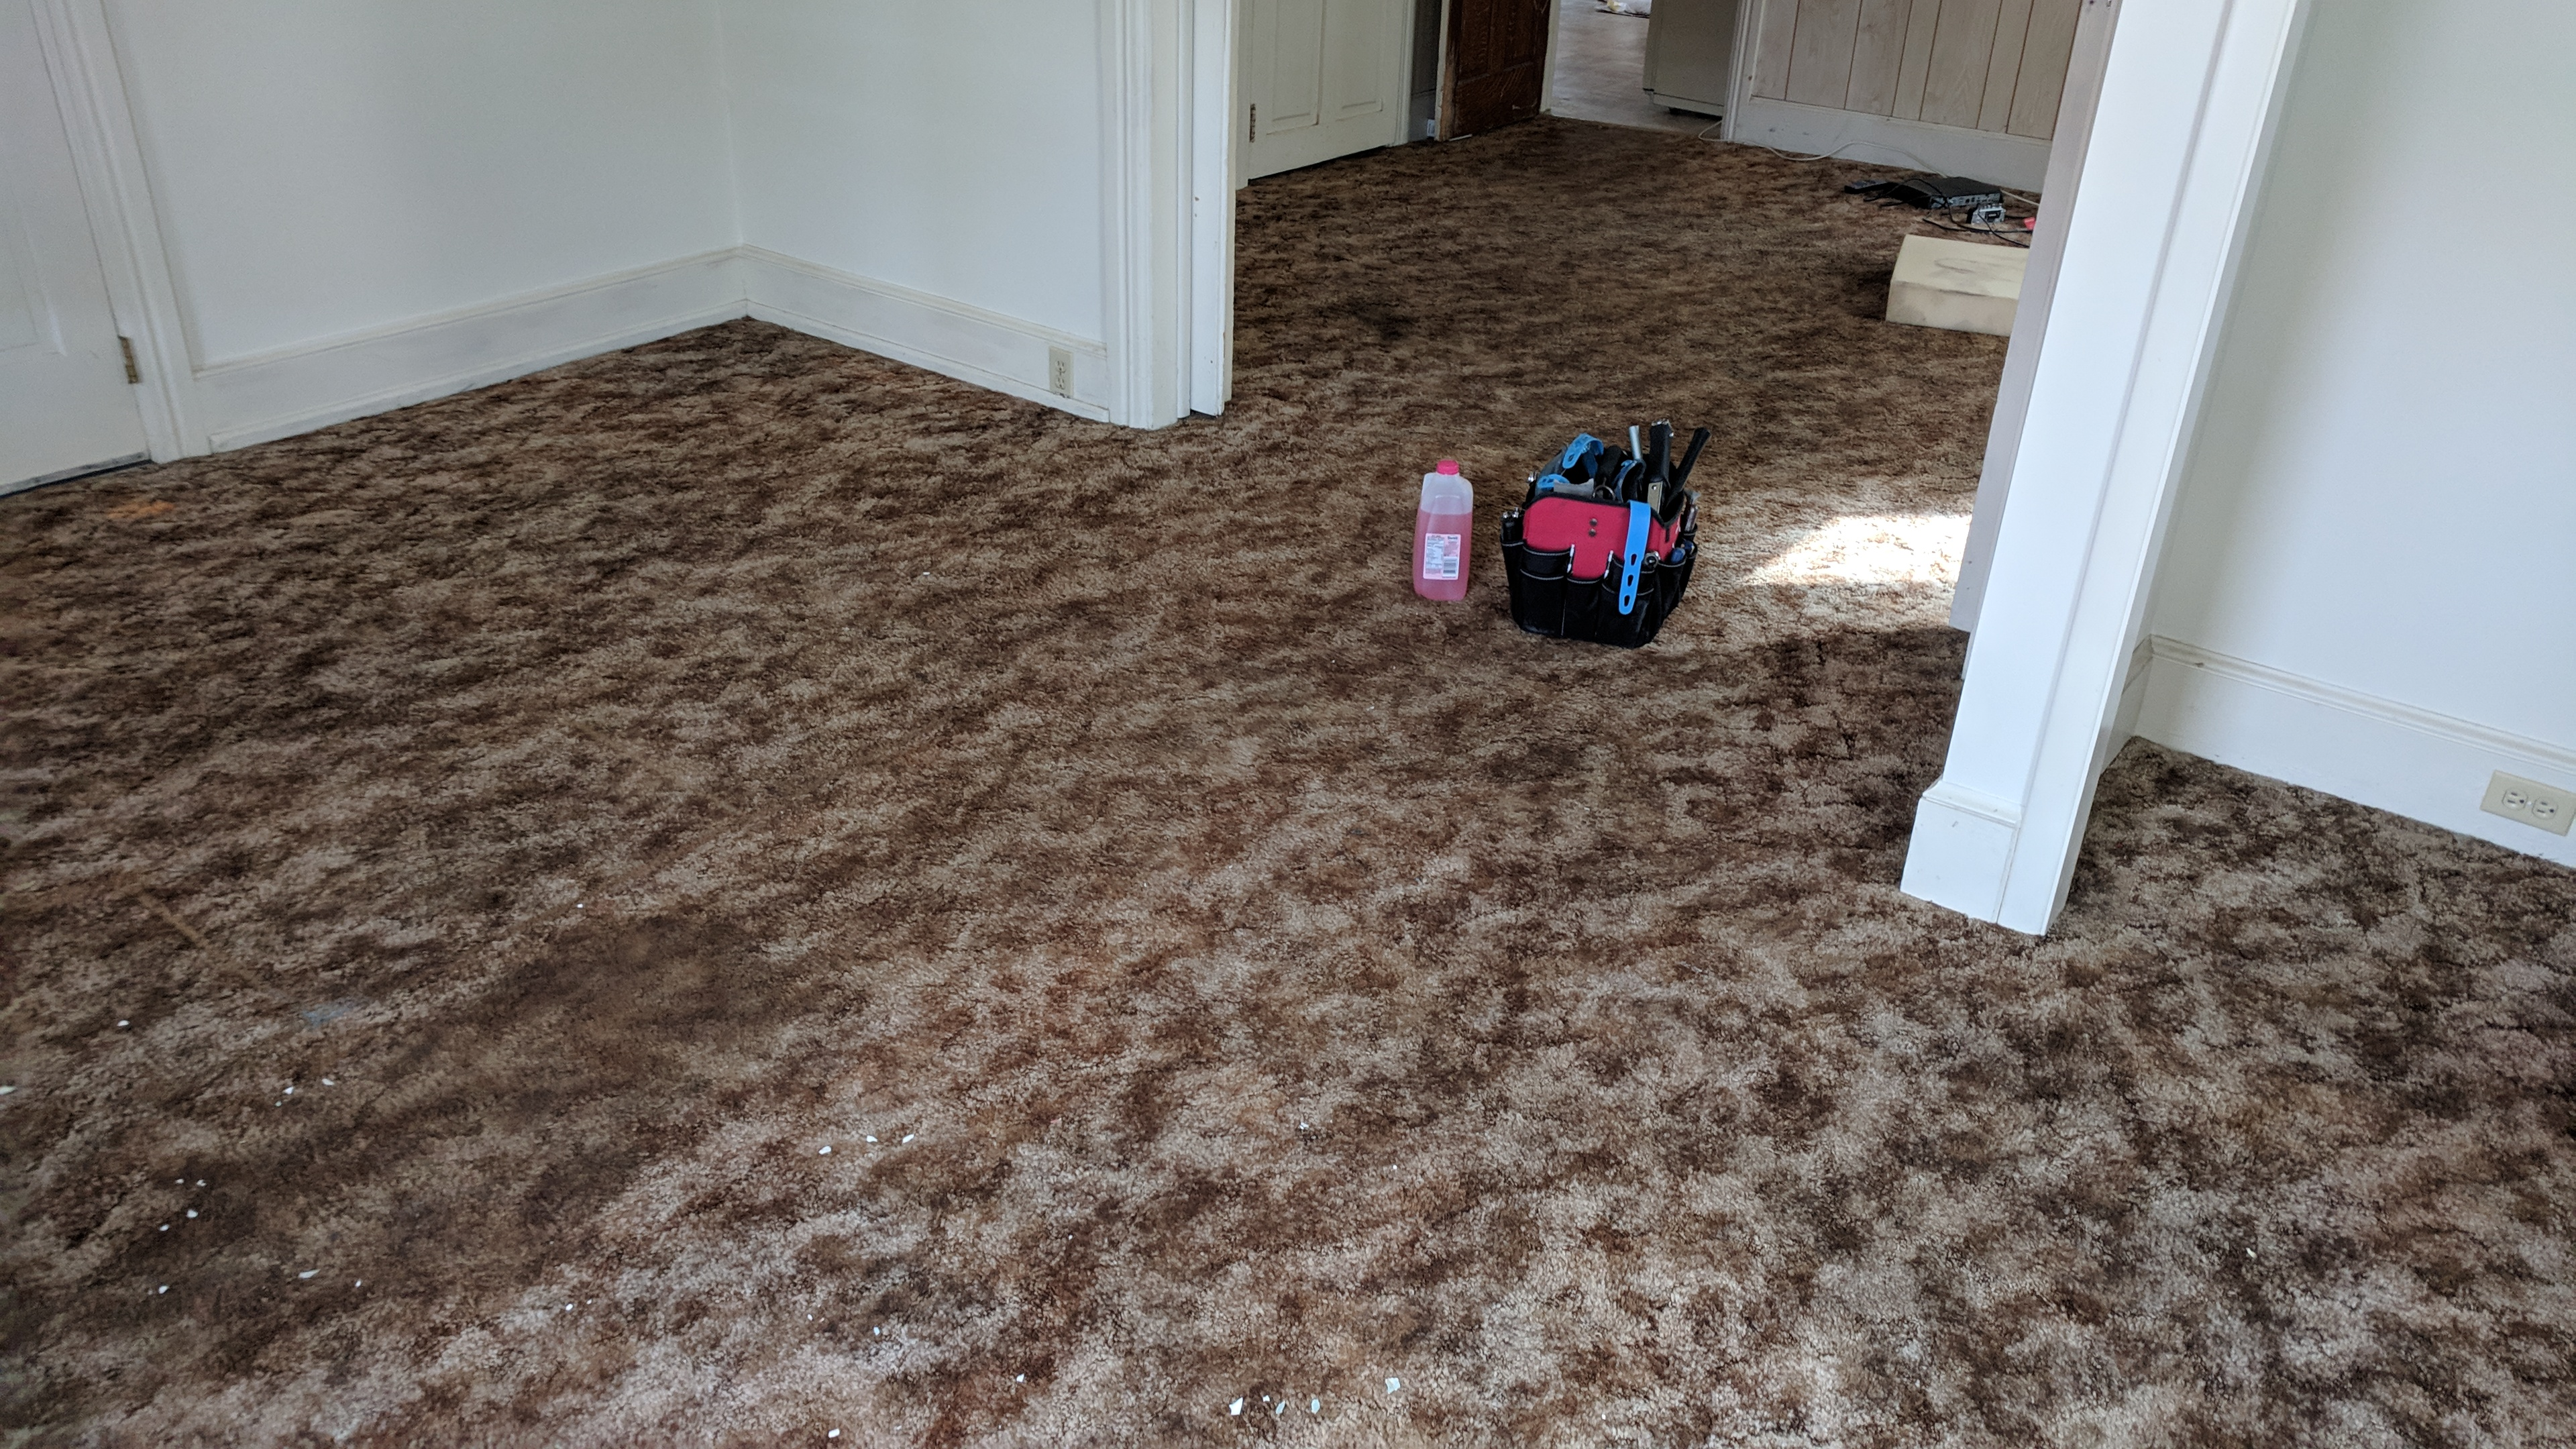 Grandma's Carpet Must Go